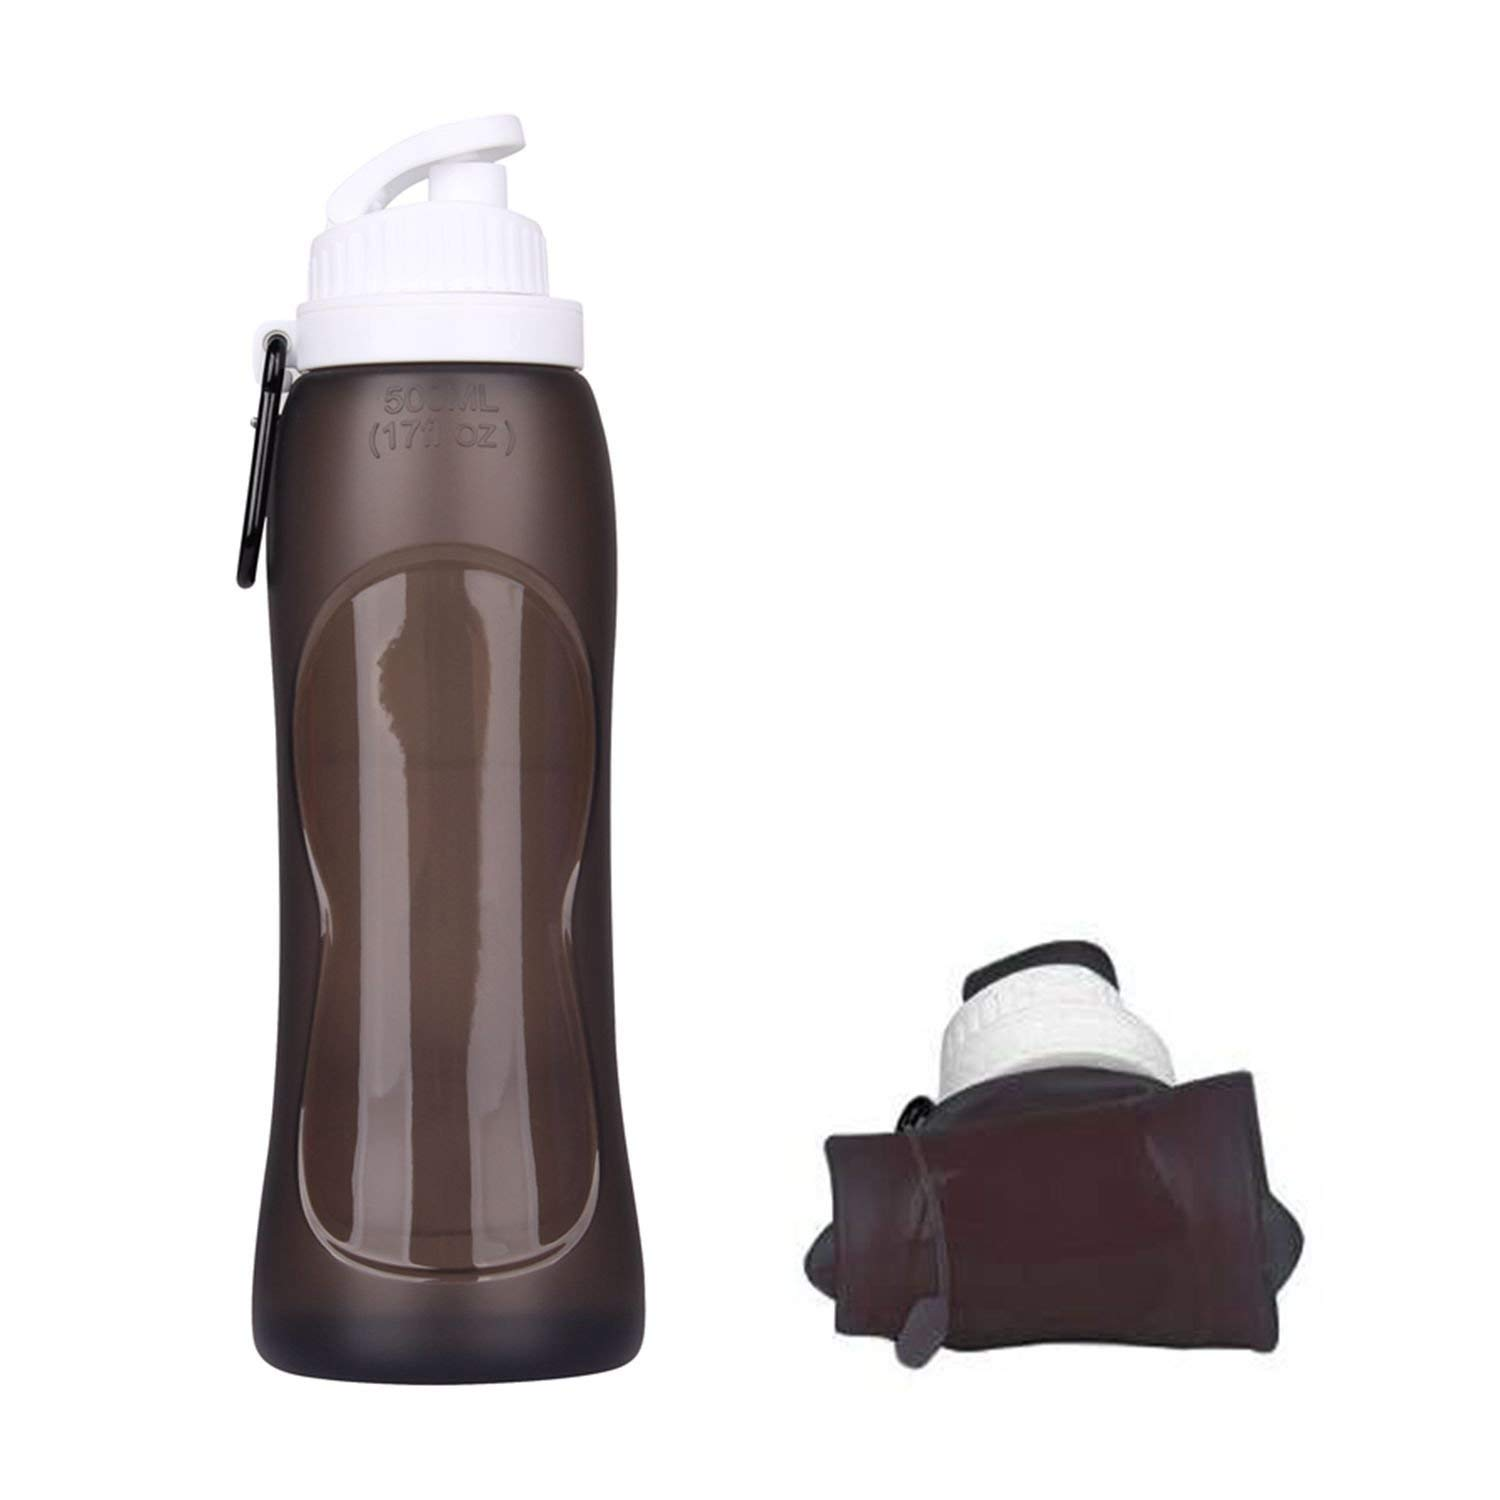 Collapsible Silicone Water Bottle FDA-approved BPA Free Leak-Proof LightweightFoldable Roll Up for Outdoors, Hiking, Camping, Biking,Sports and Traveling,17Ounces 500ml